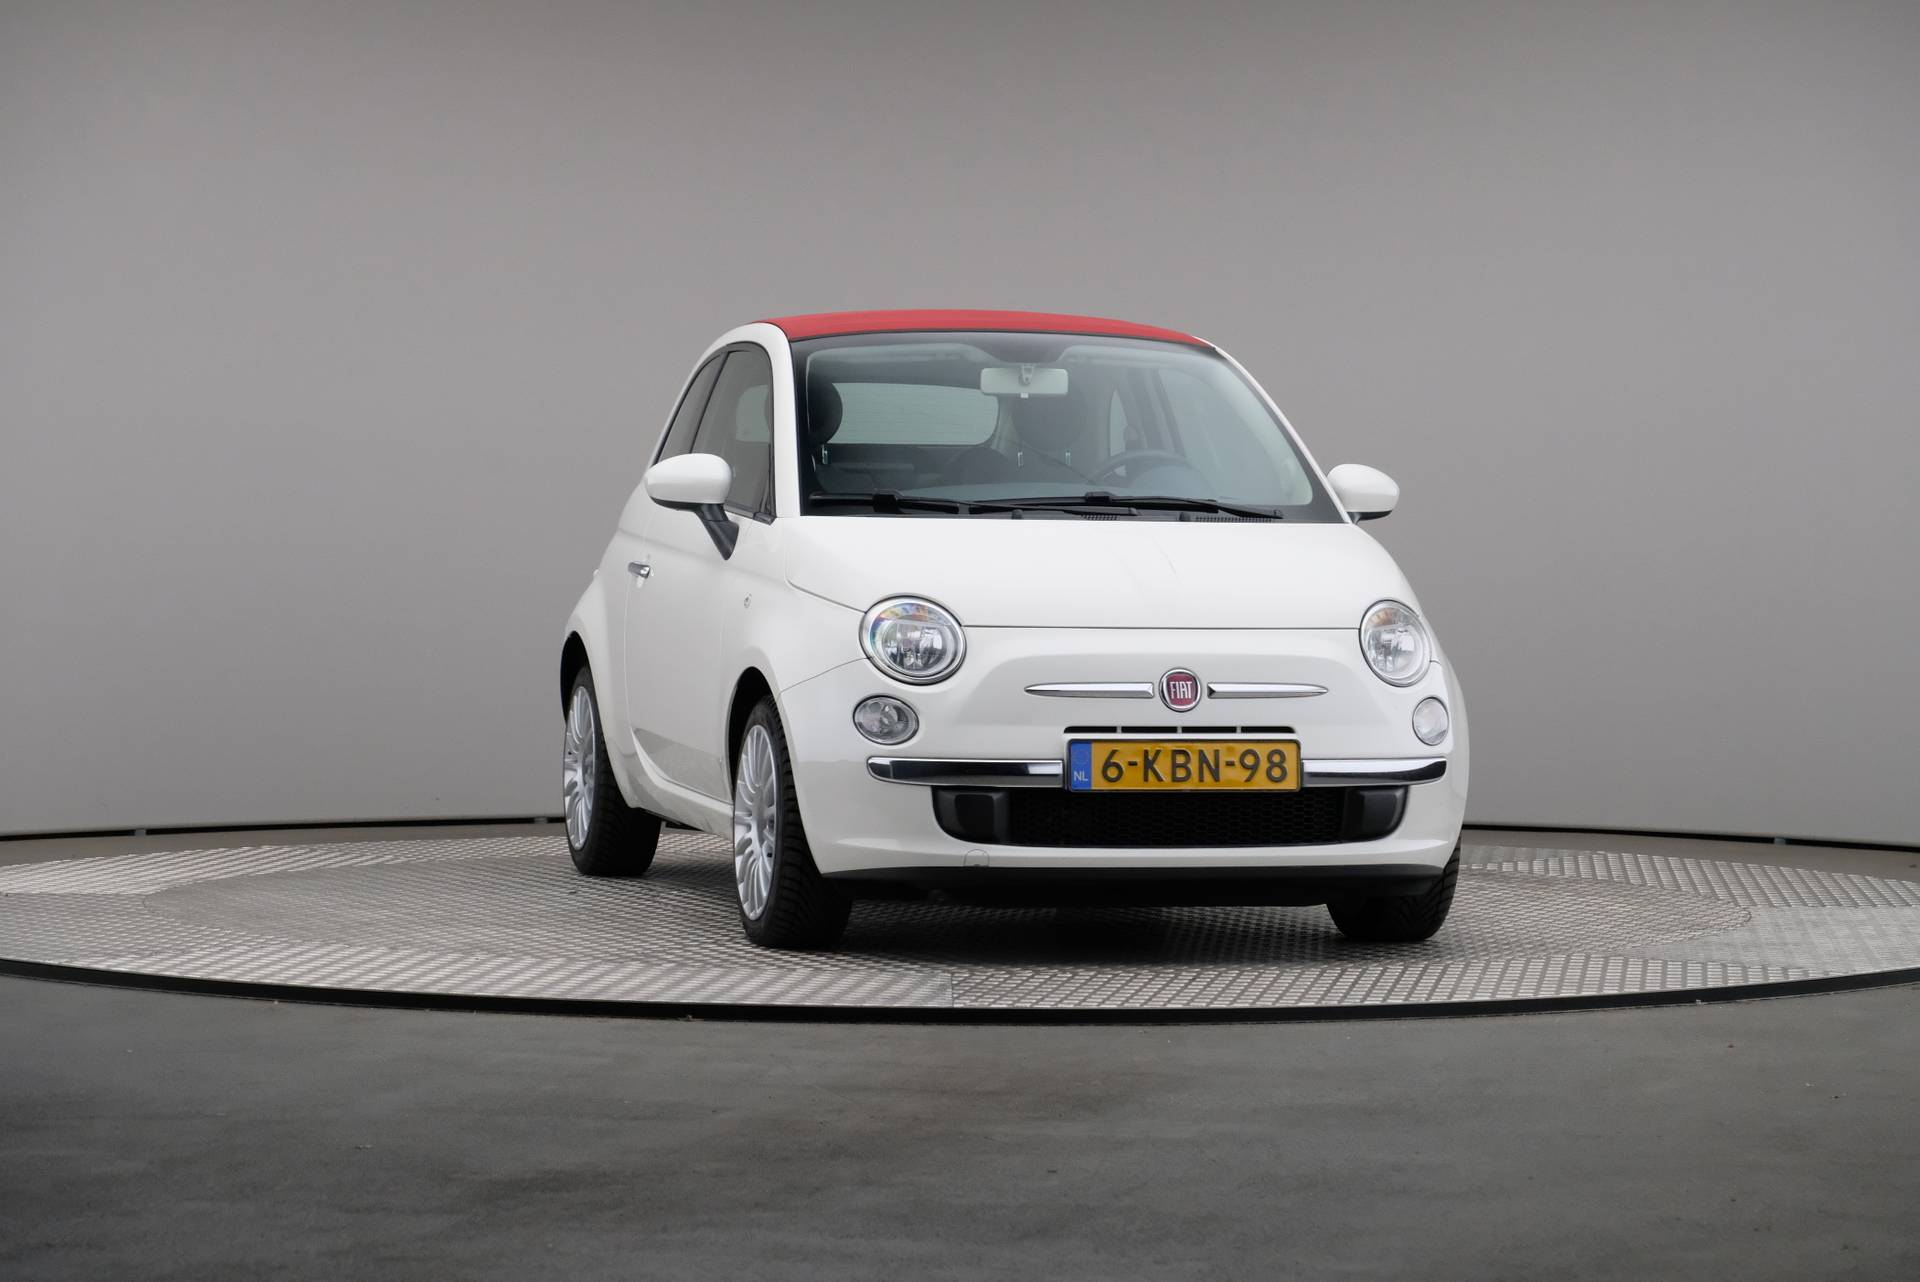 Fiat 500C TwinAir Turbo 85 Lounge, Airconditioning, 360-image31